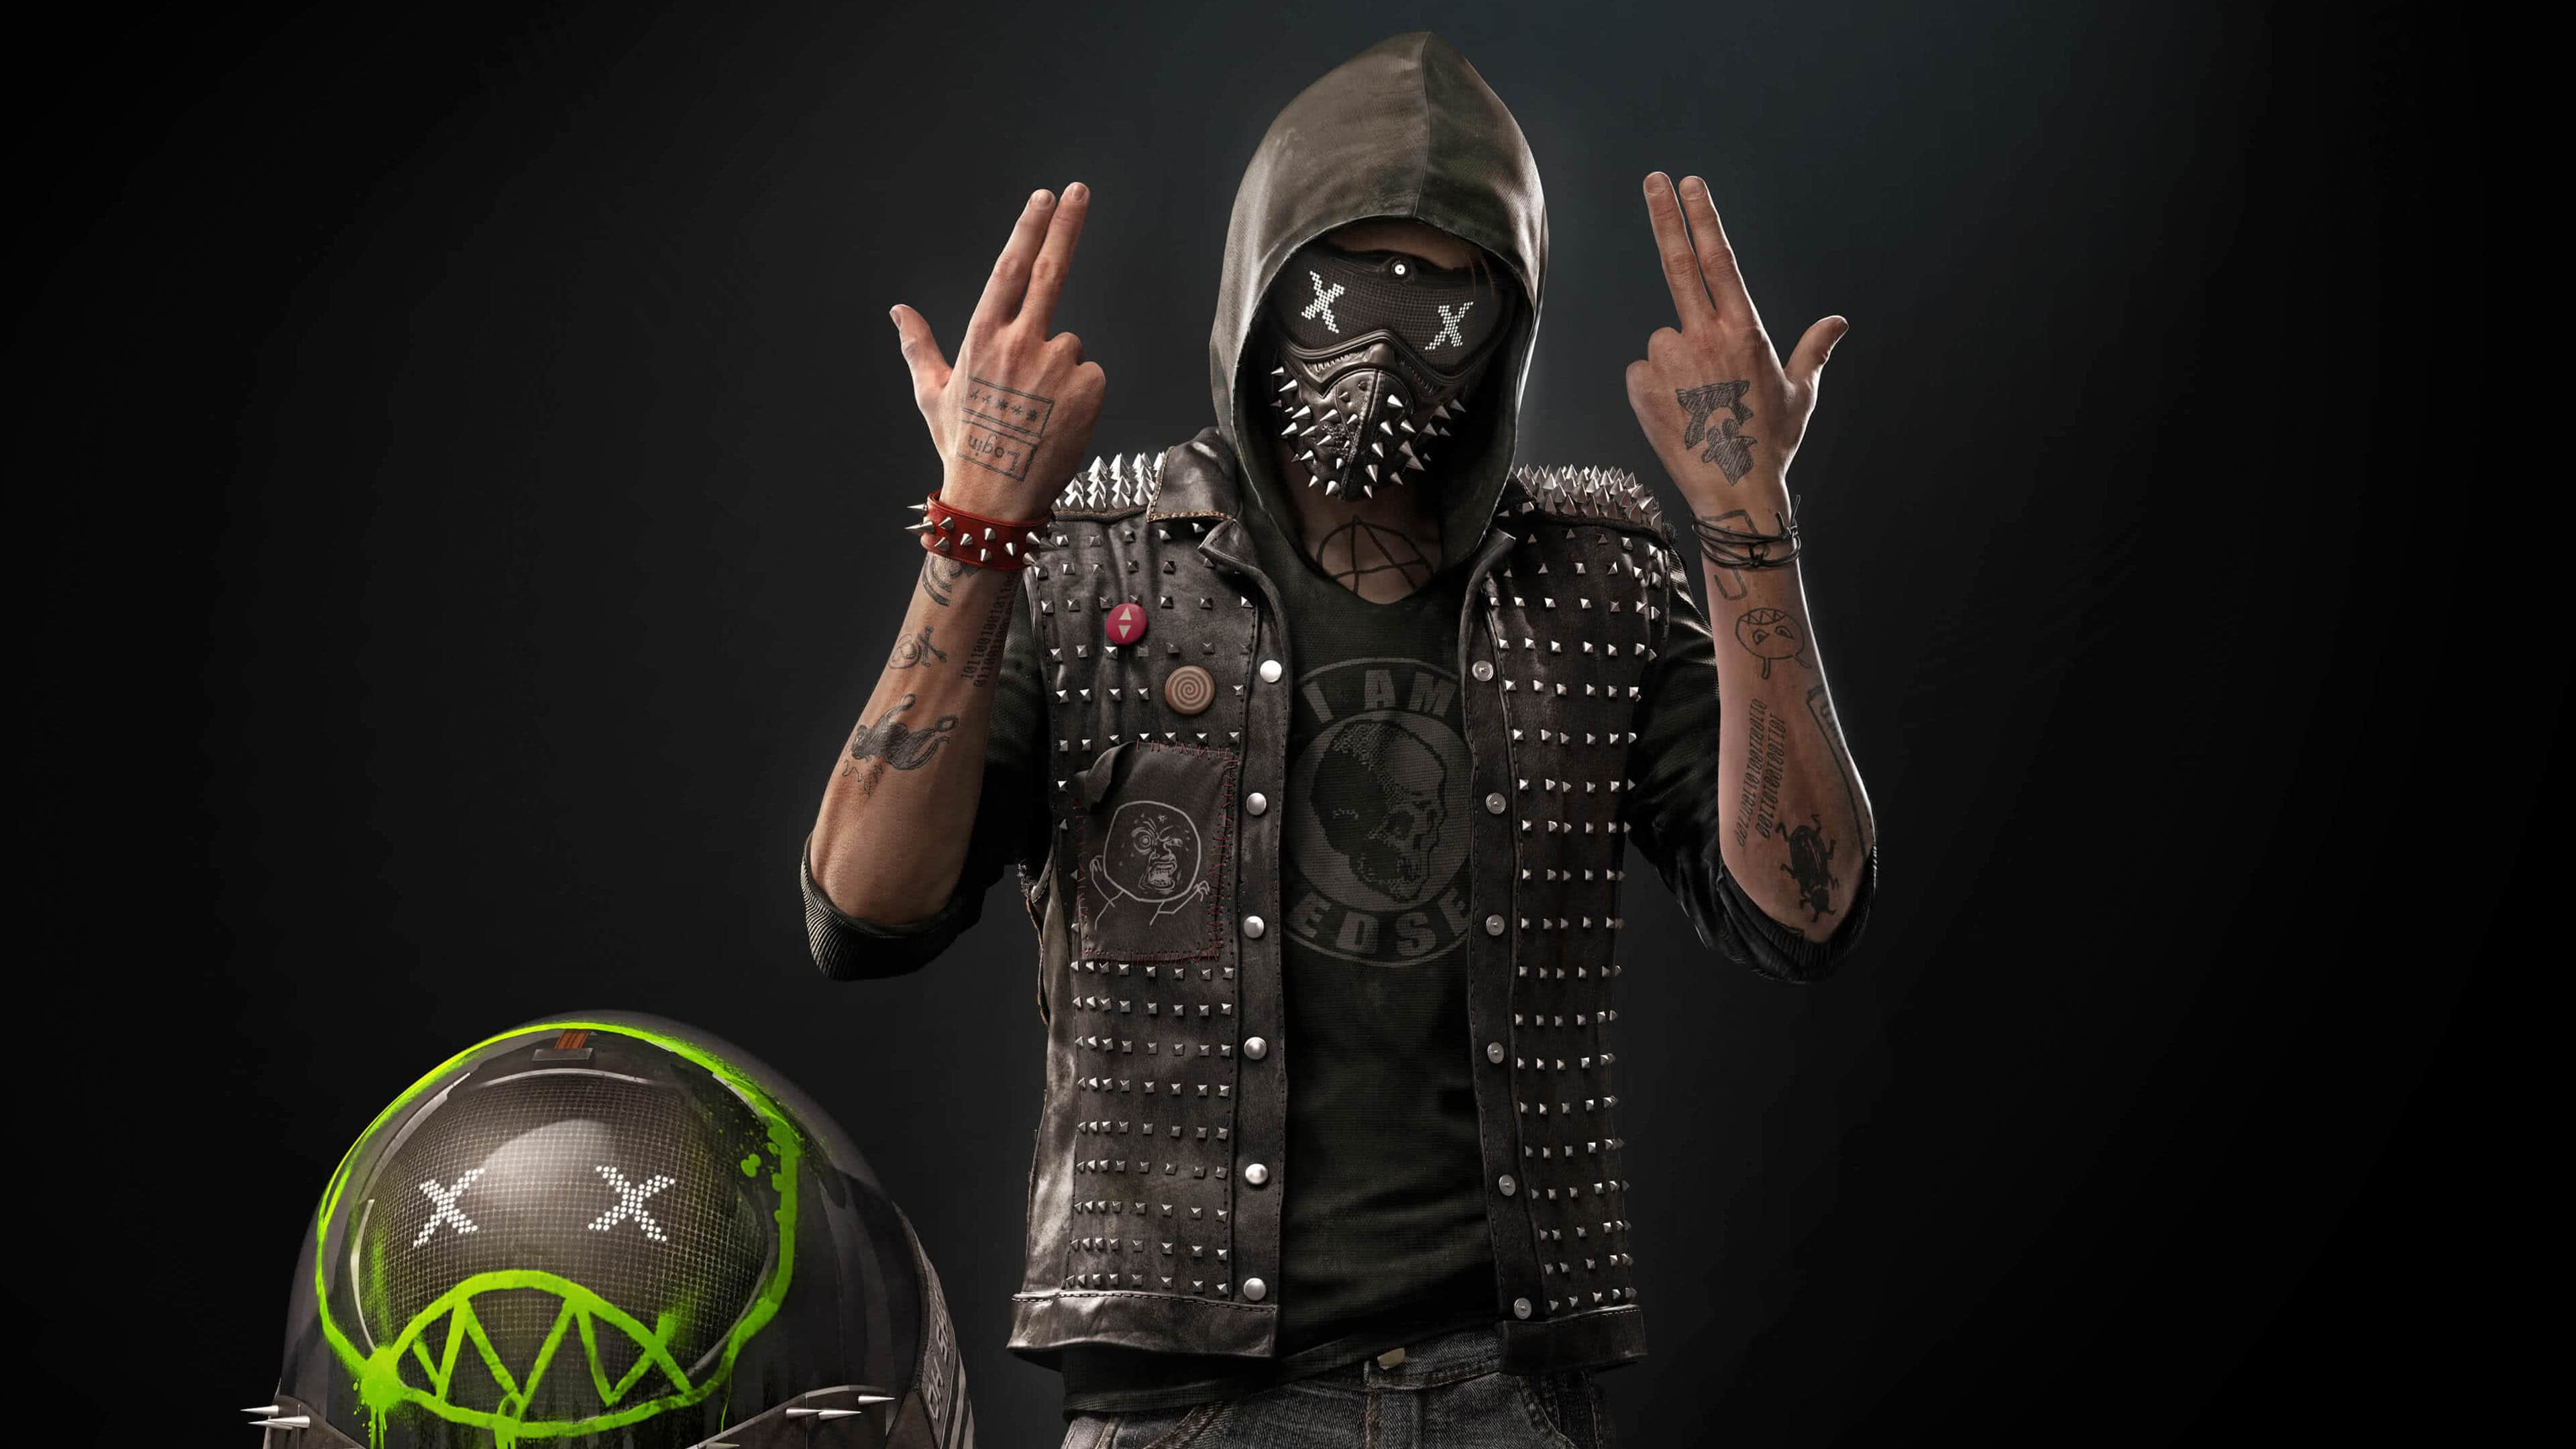 watch dogs 2 robot wrench junior uhd 4k wallpaper